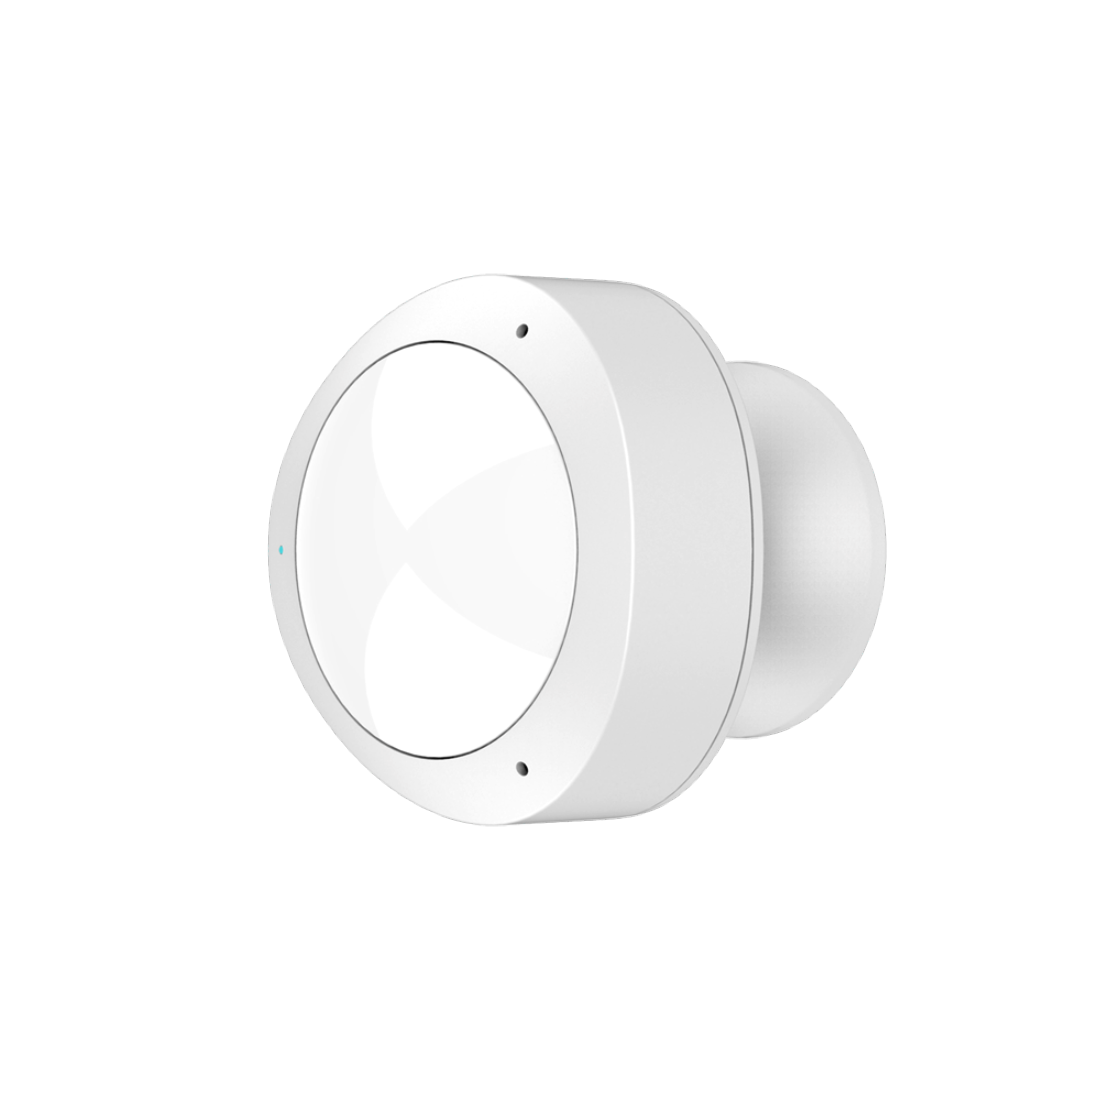 abx High-Res Image - Hama, WiFi Motion Detector